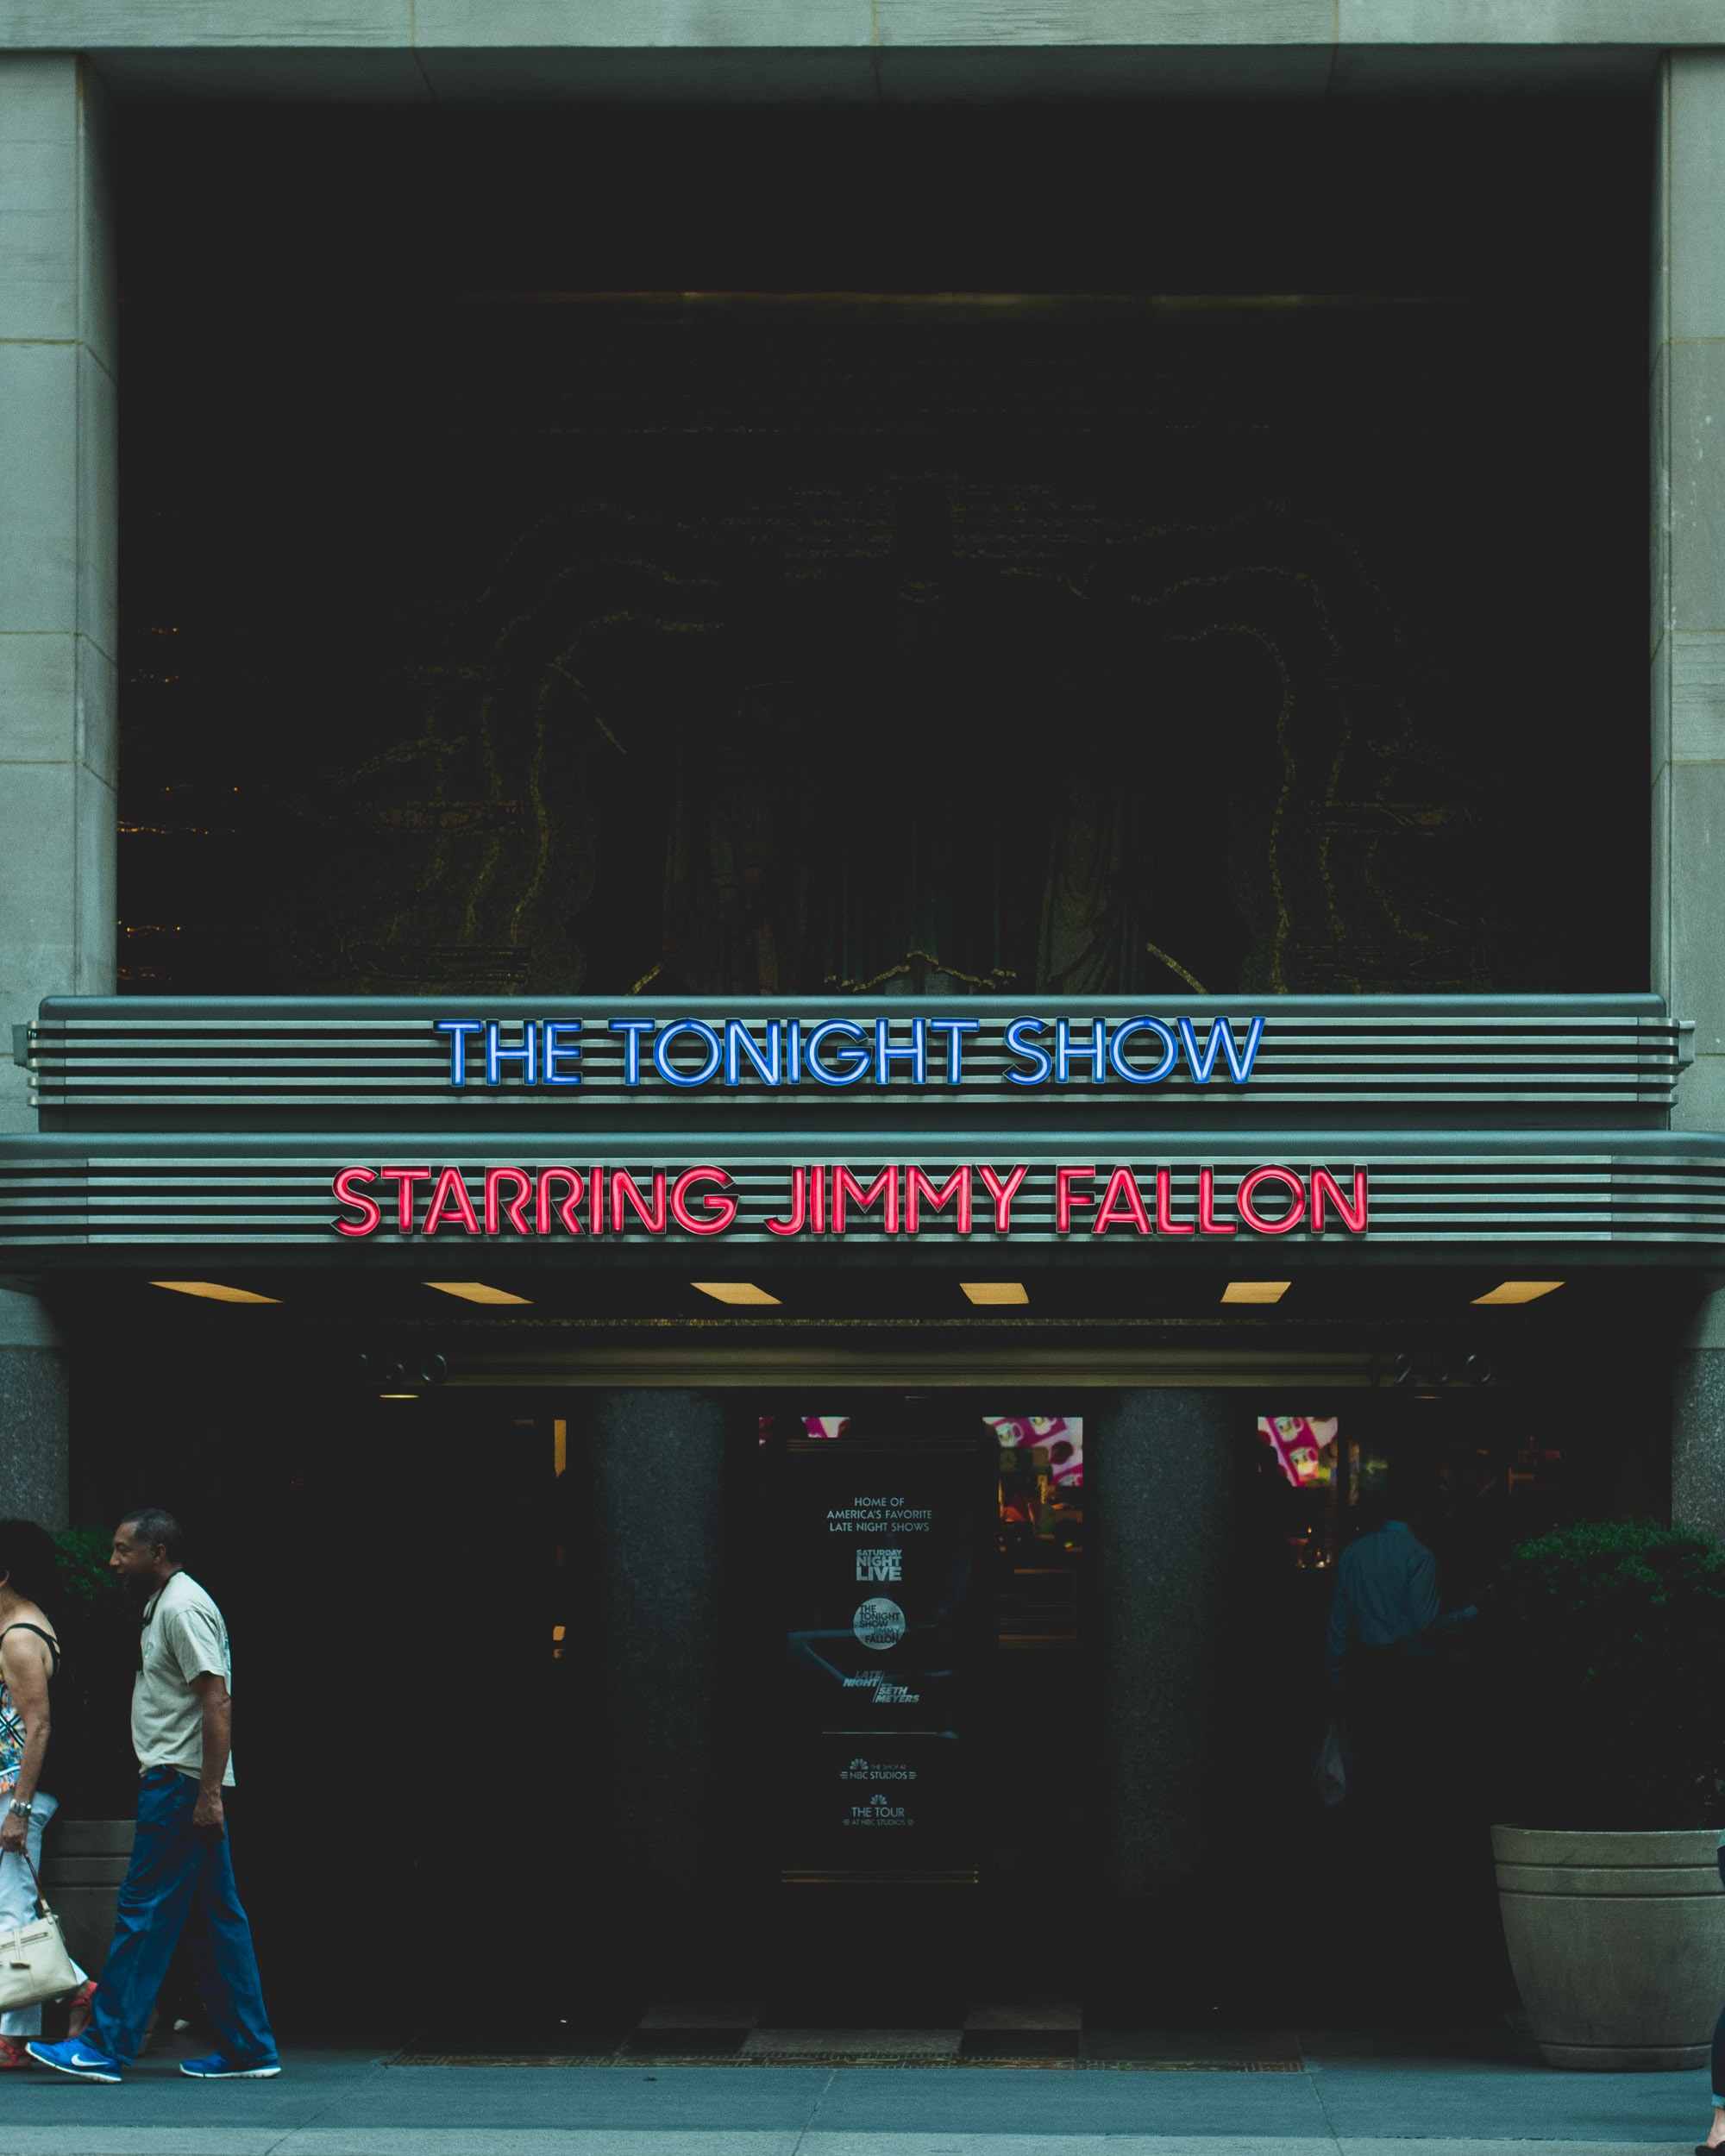 The Tonight Show Starring Jimmy Fallon building